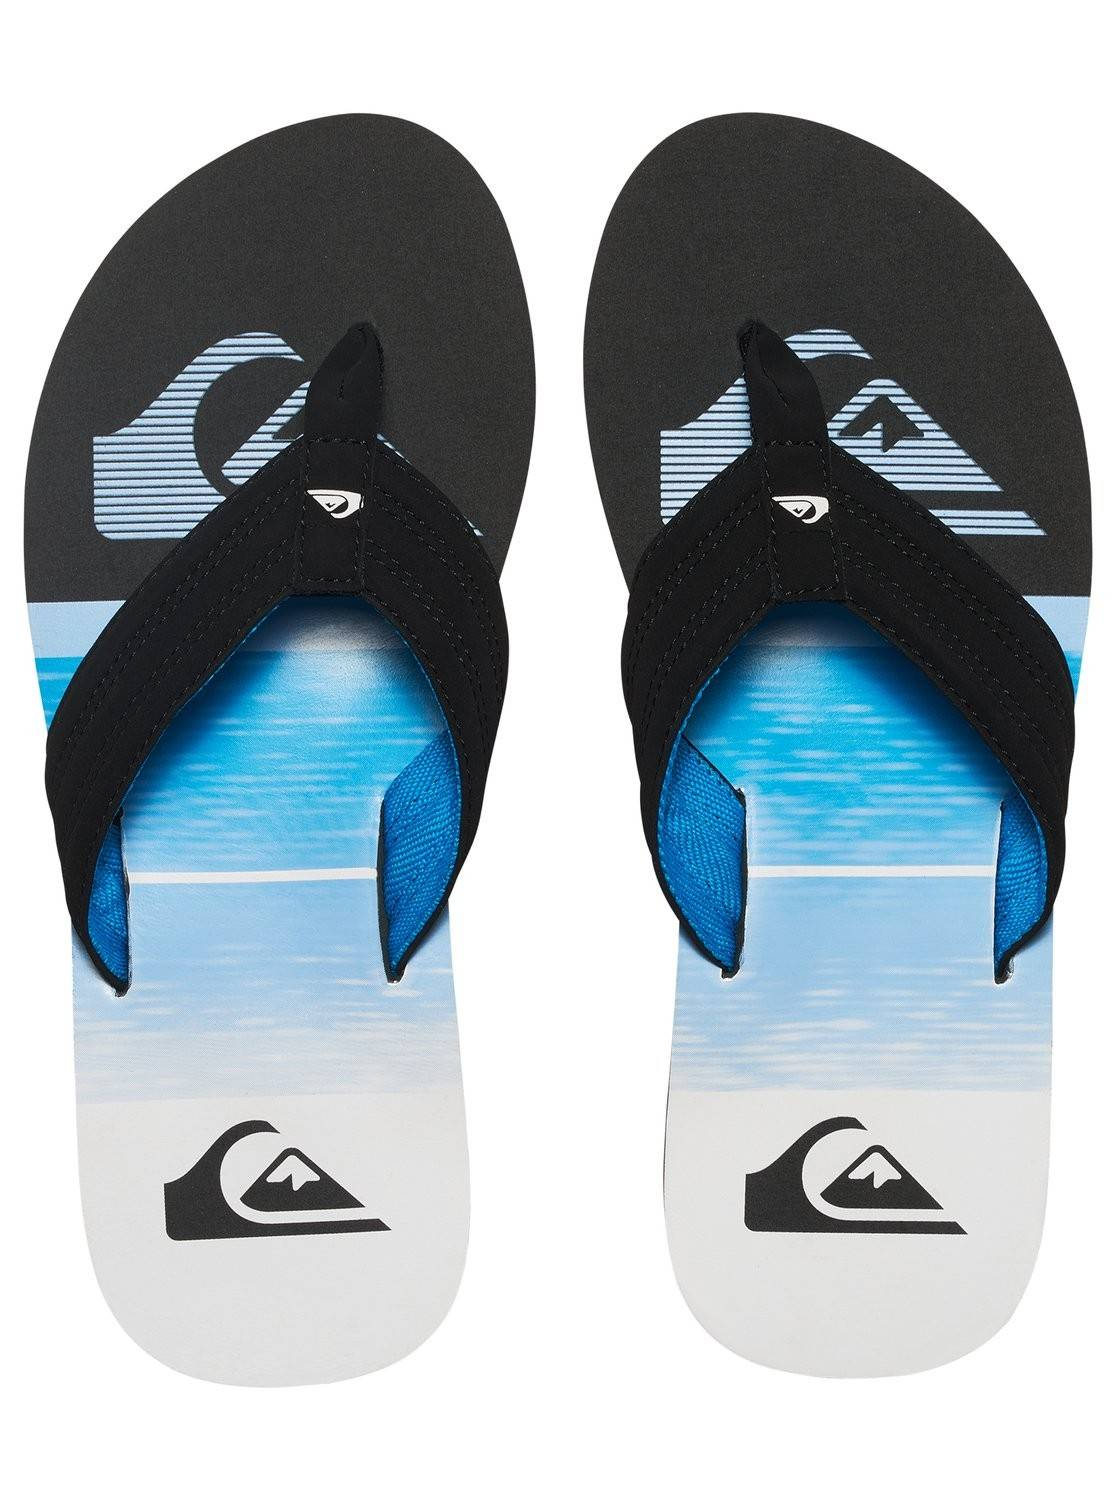 Tongs quiksilver basis xkbw black blue white les4nages